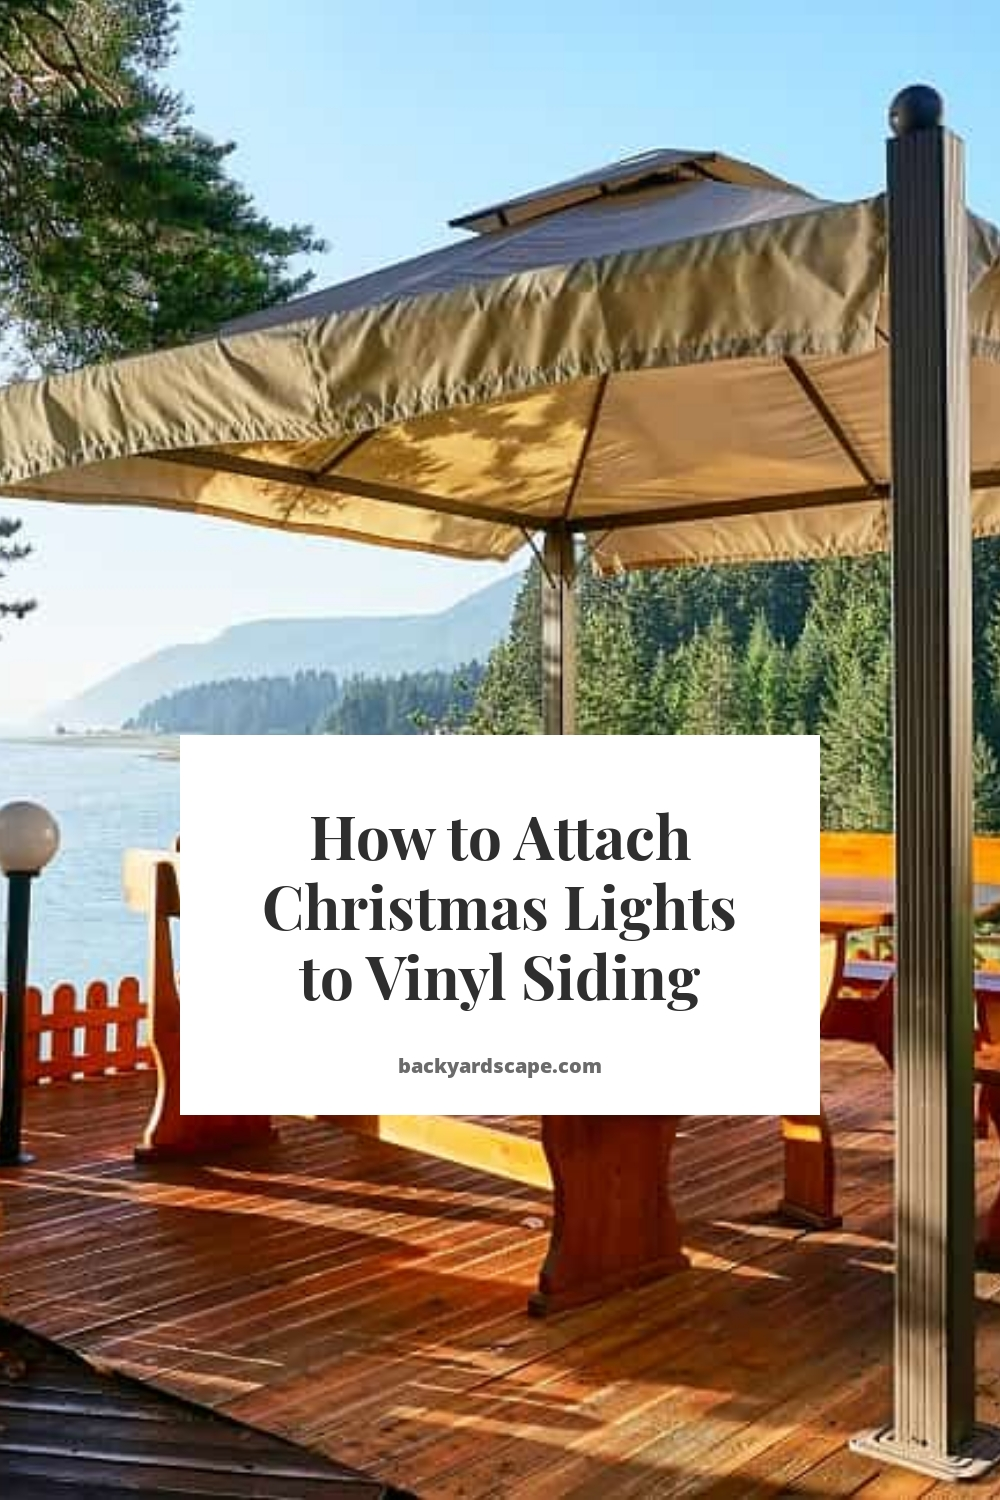 How to Attach Christmas Lights to Vinyl Siding